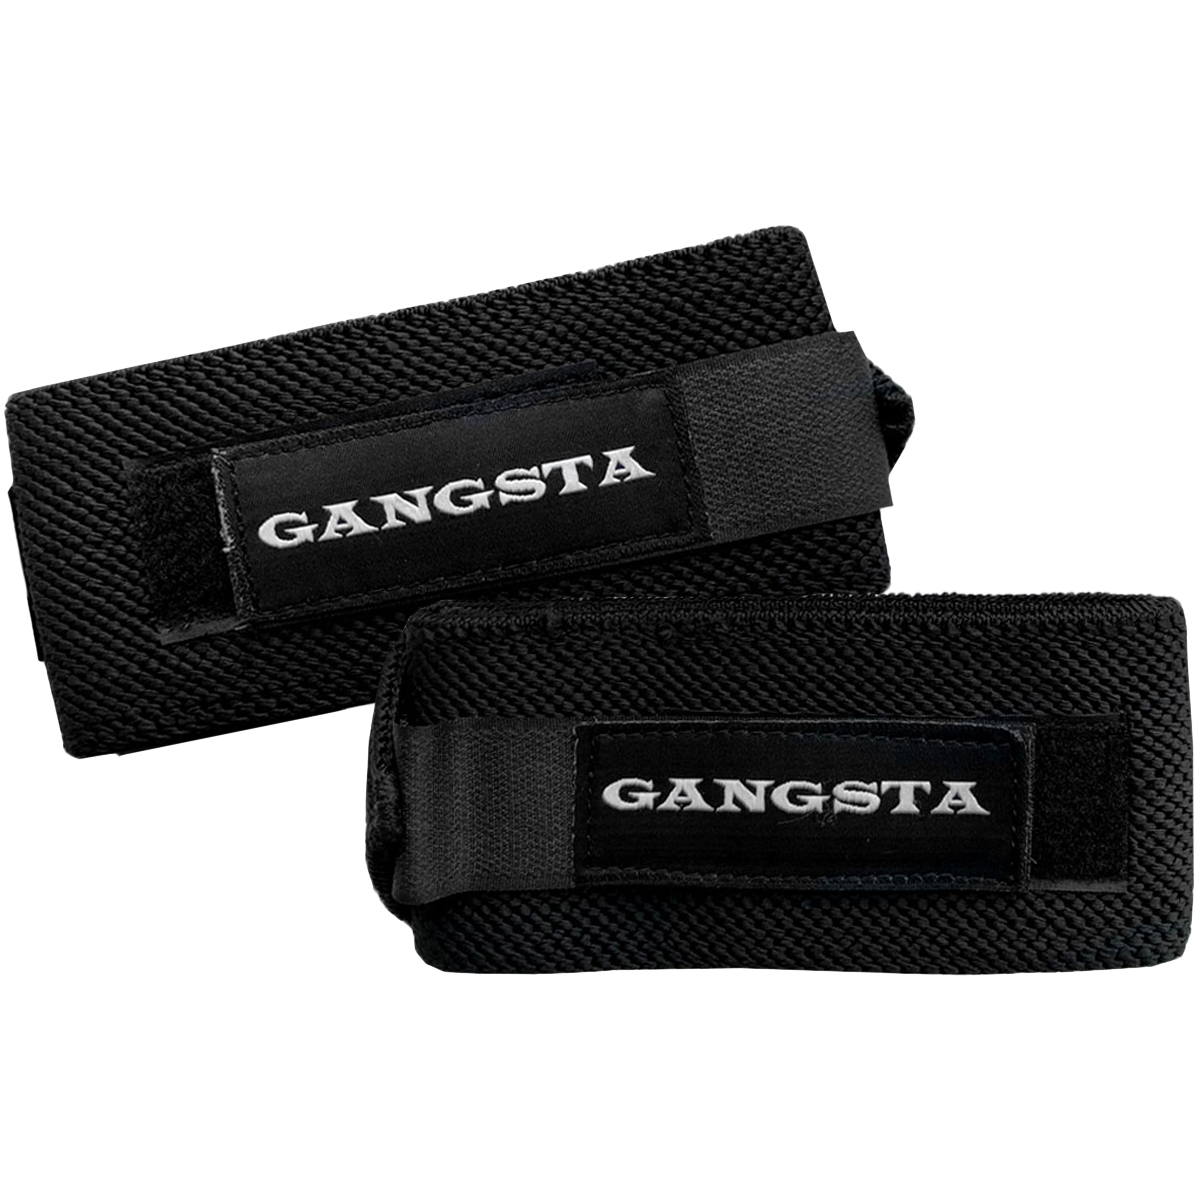 c86e736a16 Sling Shot Gangsta Wraps by Mark Bell, IPF approved weight lifting ...